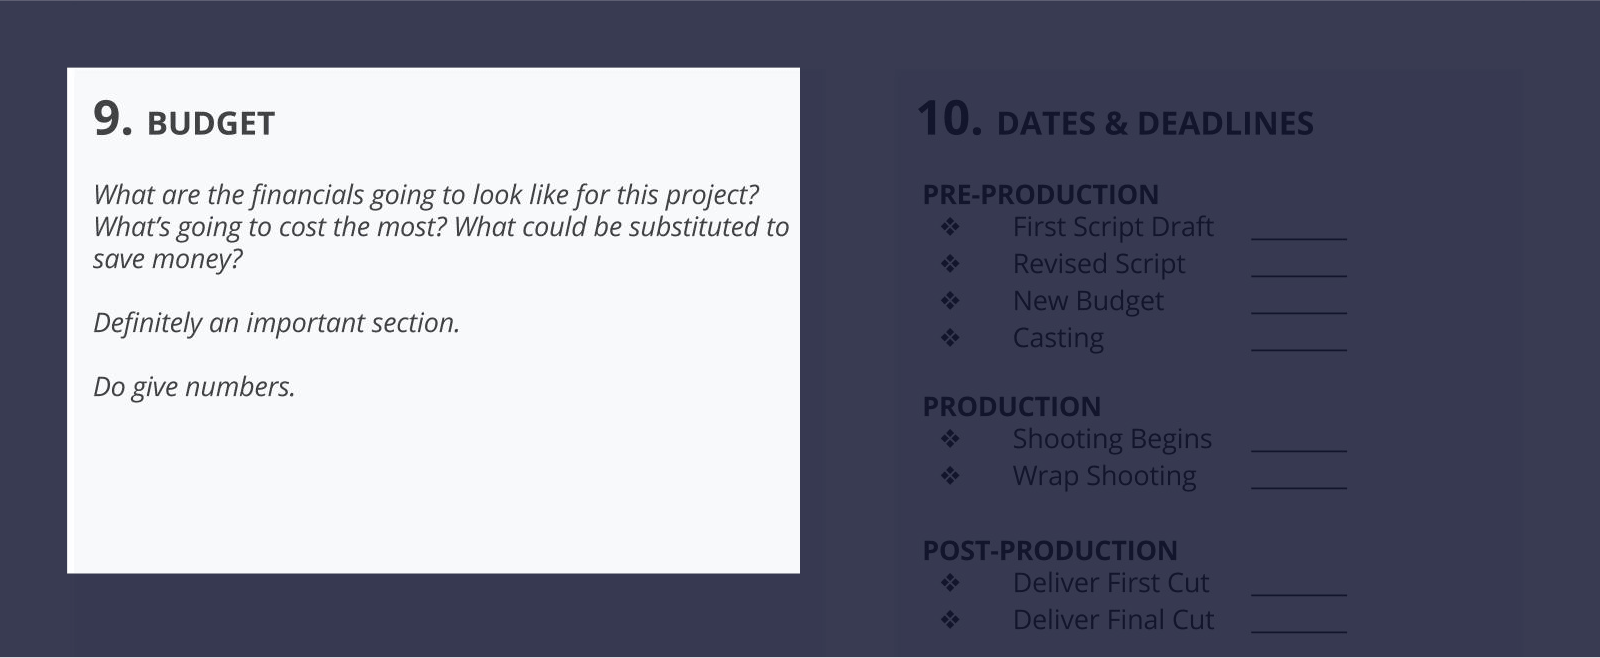 The Best Creative Brief Template For Video Agencies [Free Download] - Section 9 - Budget